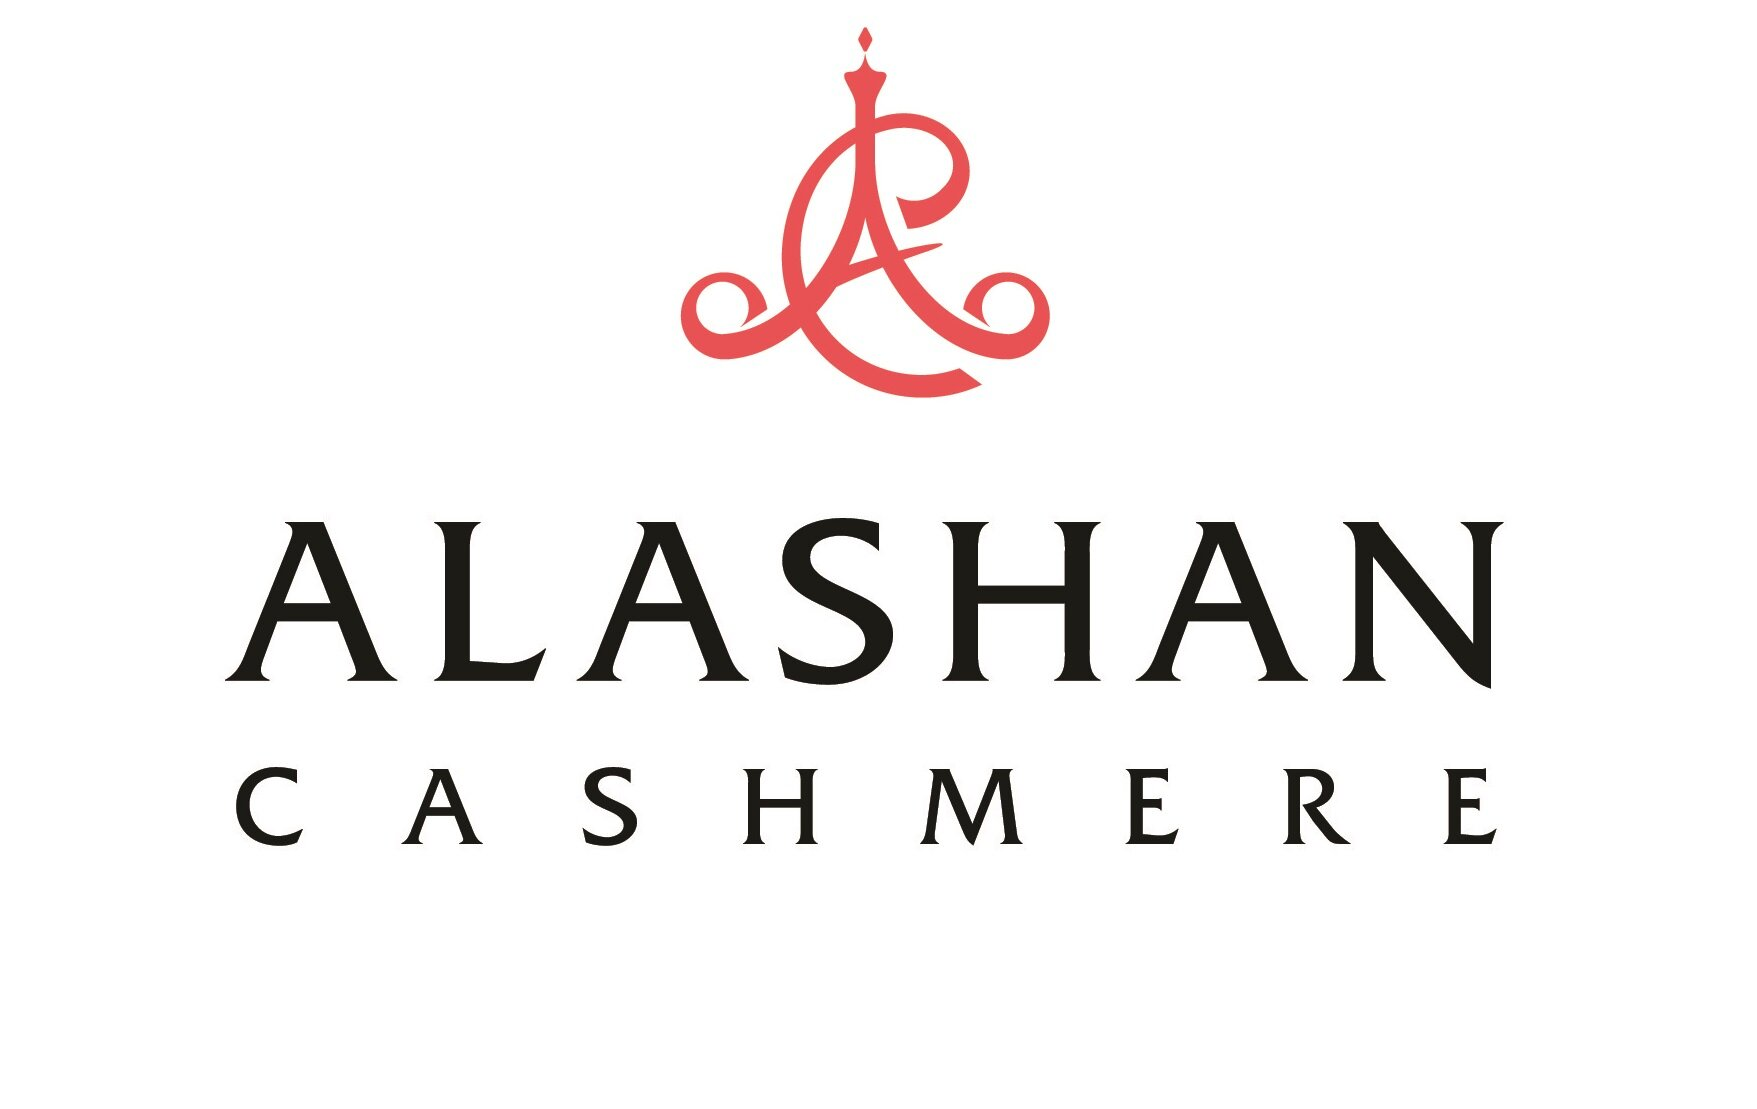 Alashan Cashmere Company is fine luxury cashmere. The name Alashan refers to an area of western Inner Mongolia Province, China. The Alashan region, through a combination of climactic, geographic and dietary conditions, is the literal home to the world's finest cashmere and camel hair. During each fiber collection season, the goats and camels from this region produce the most highly sought after fiber in all of China.